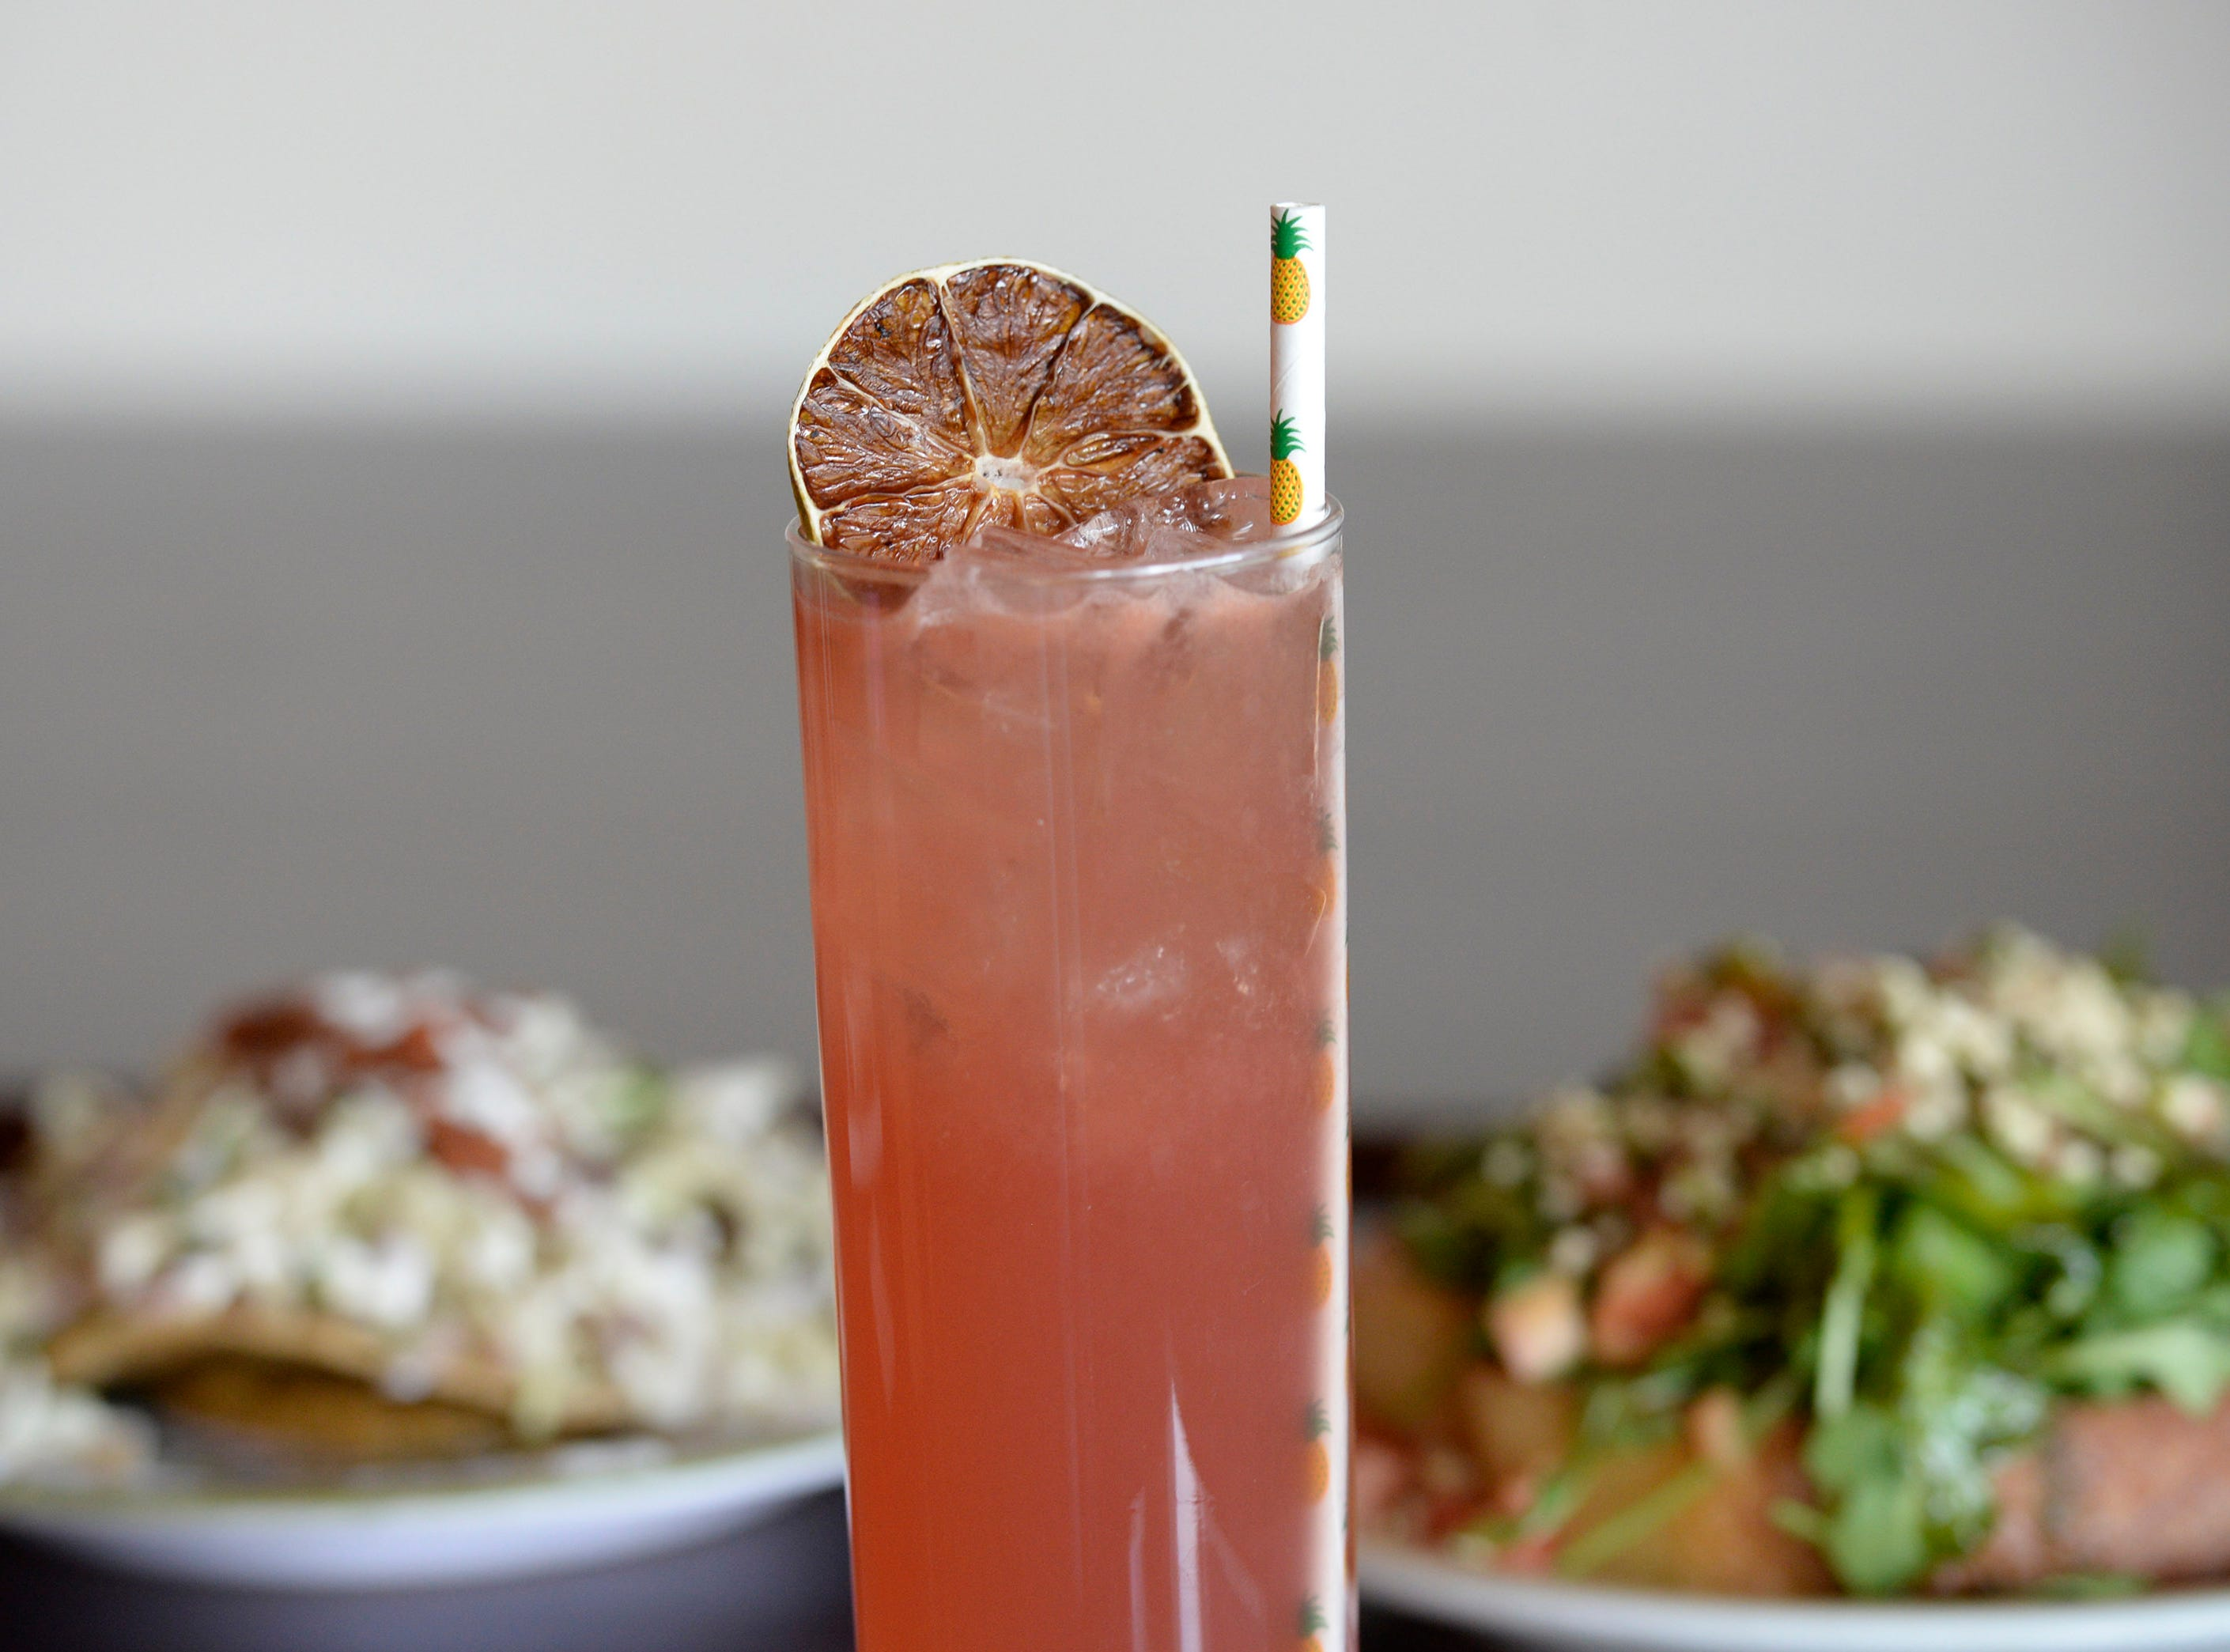 House crafted Passionate Punch at Chive Kitchen is made with Hangar 1 vodka.